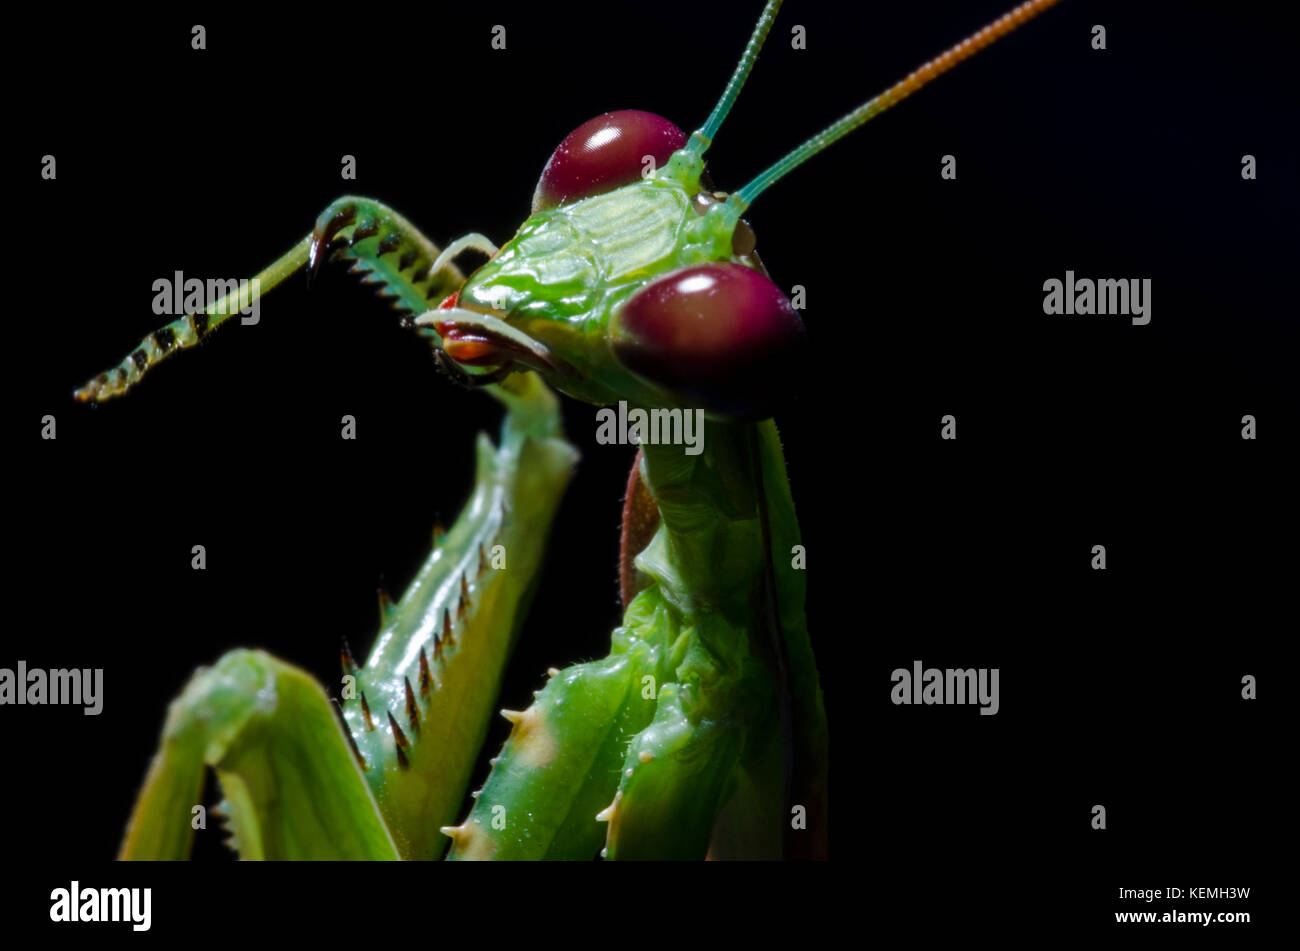 Praying Mantis - Stock Image